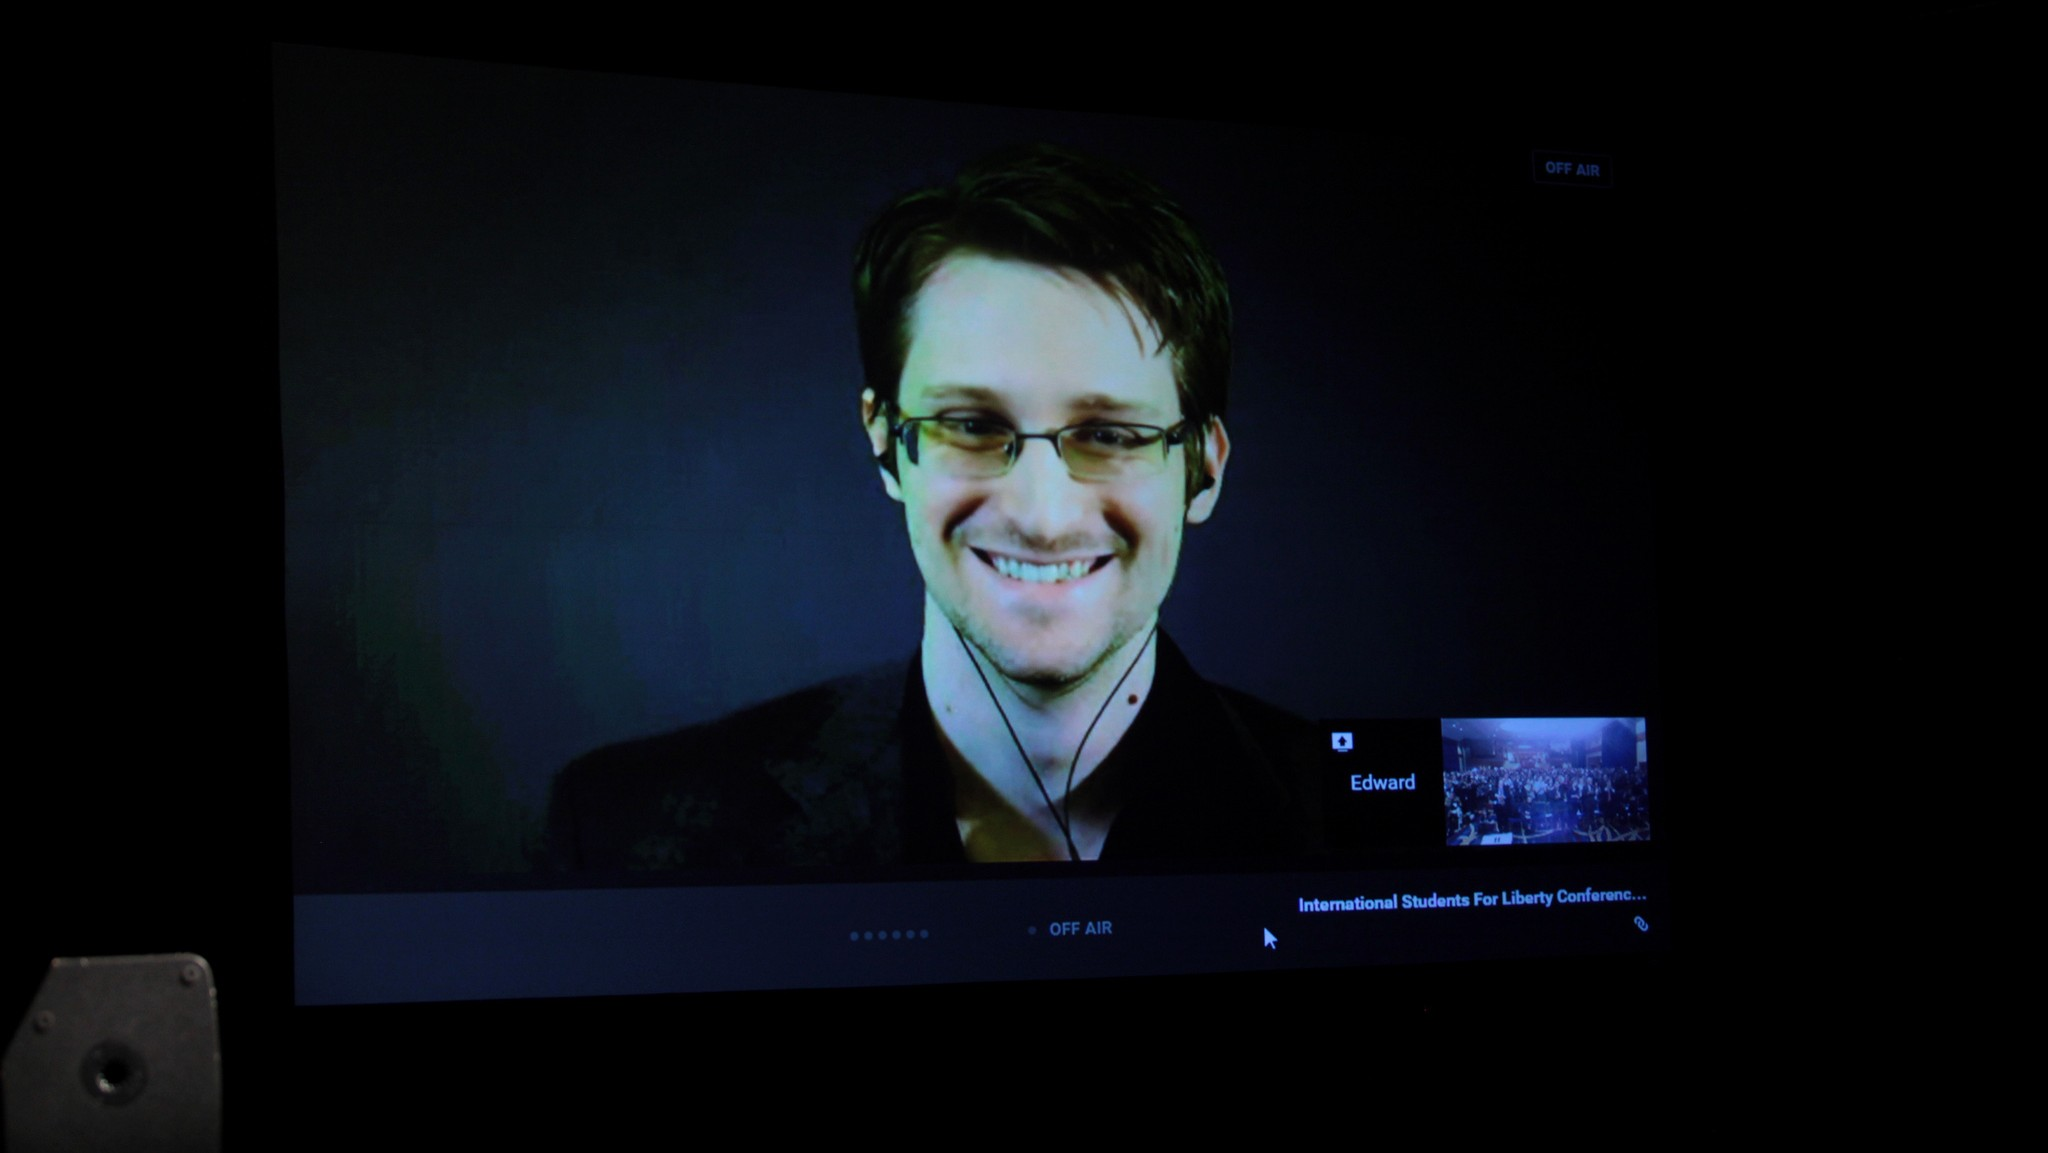 Official Reports on the Damage Caused by Edward Snowden's Leaks Are Totally Redacted